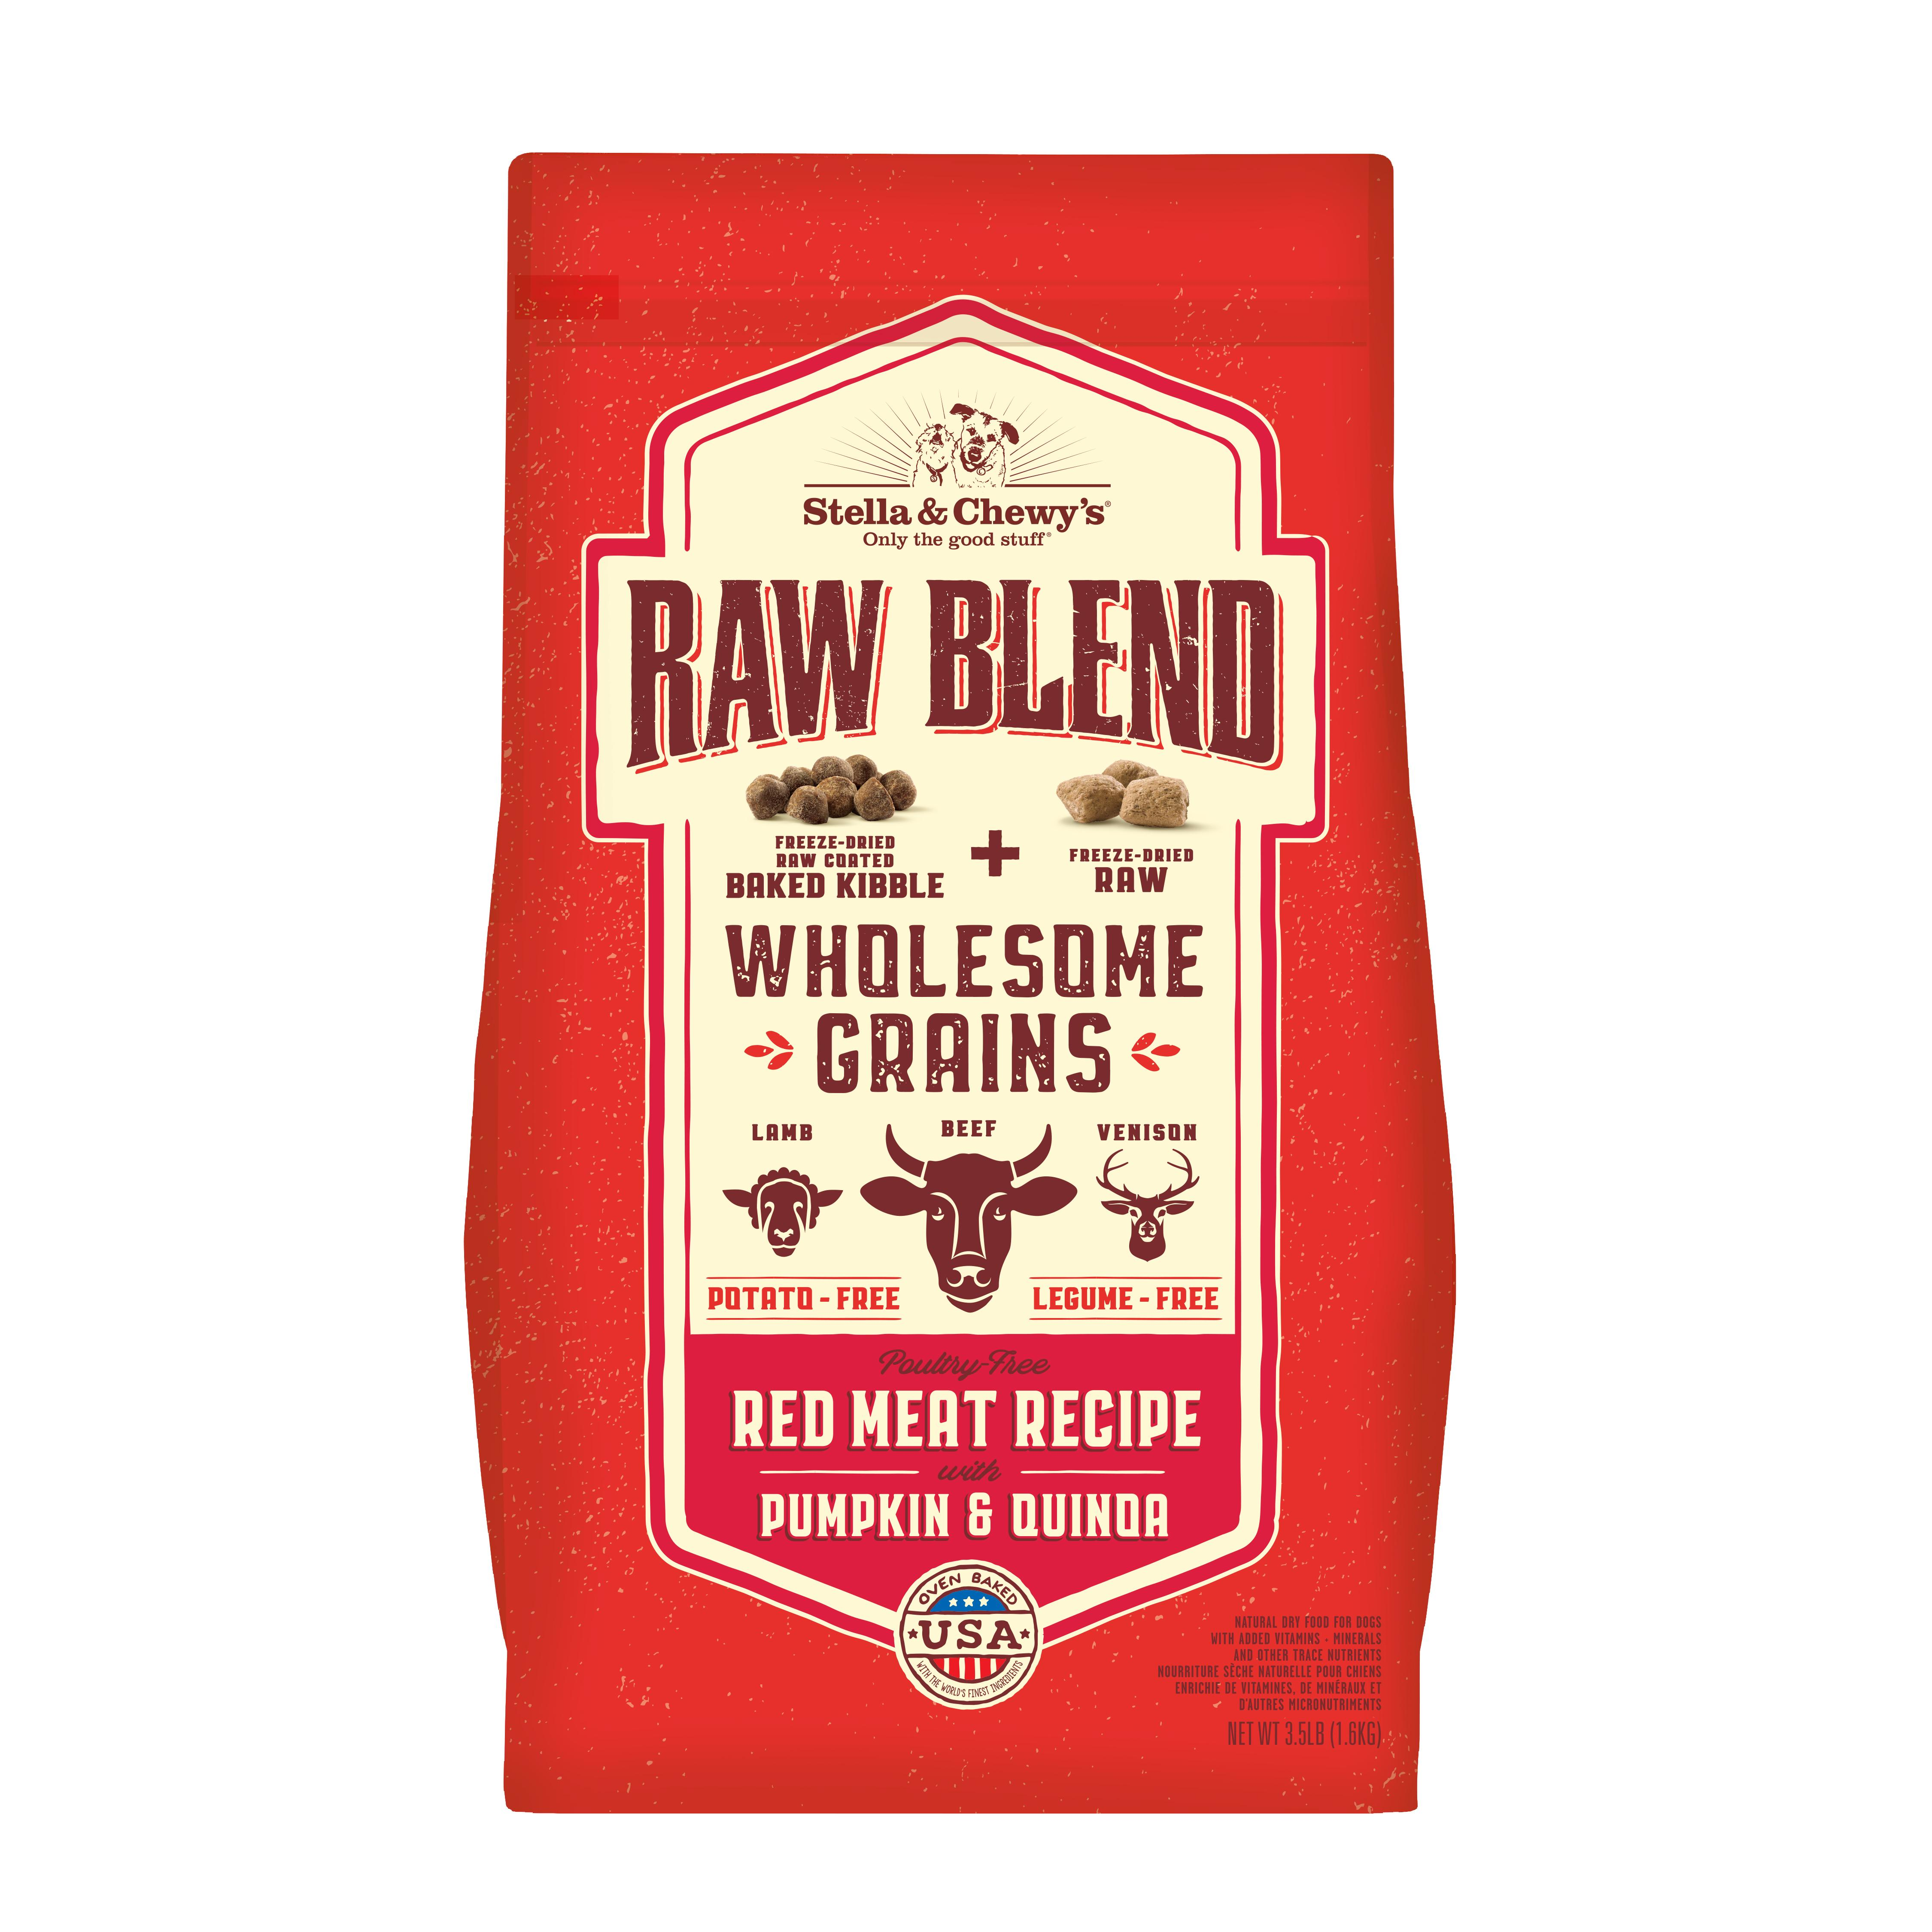 Stella & Chewy'sRaw Blend Wholesome Grains Red Meat Recipe with Pumpkin & Quinoa Dry Dog Food Image